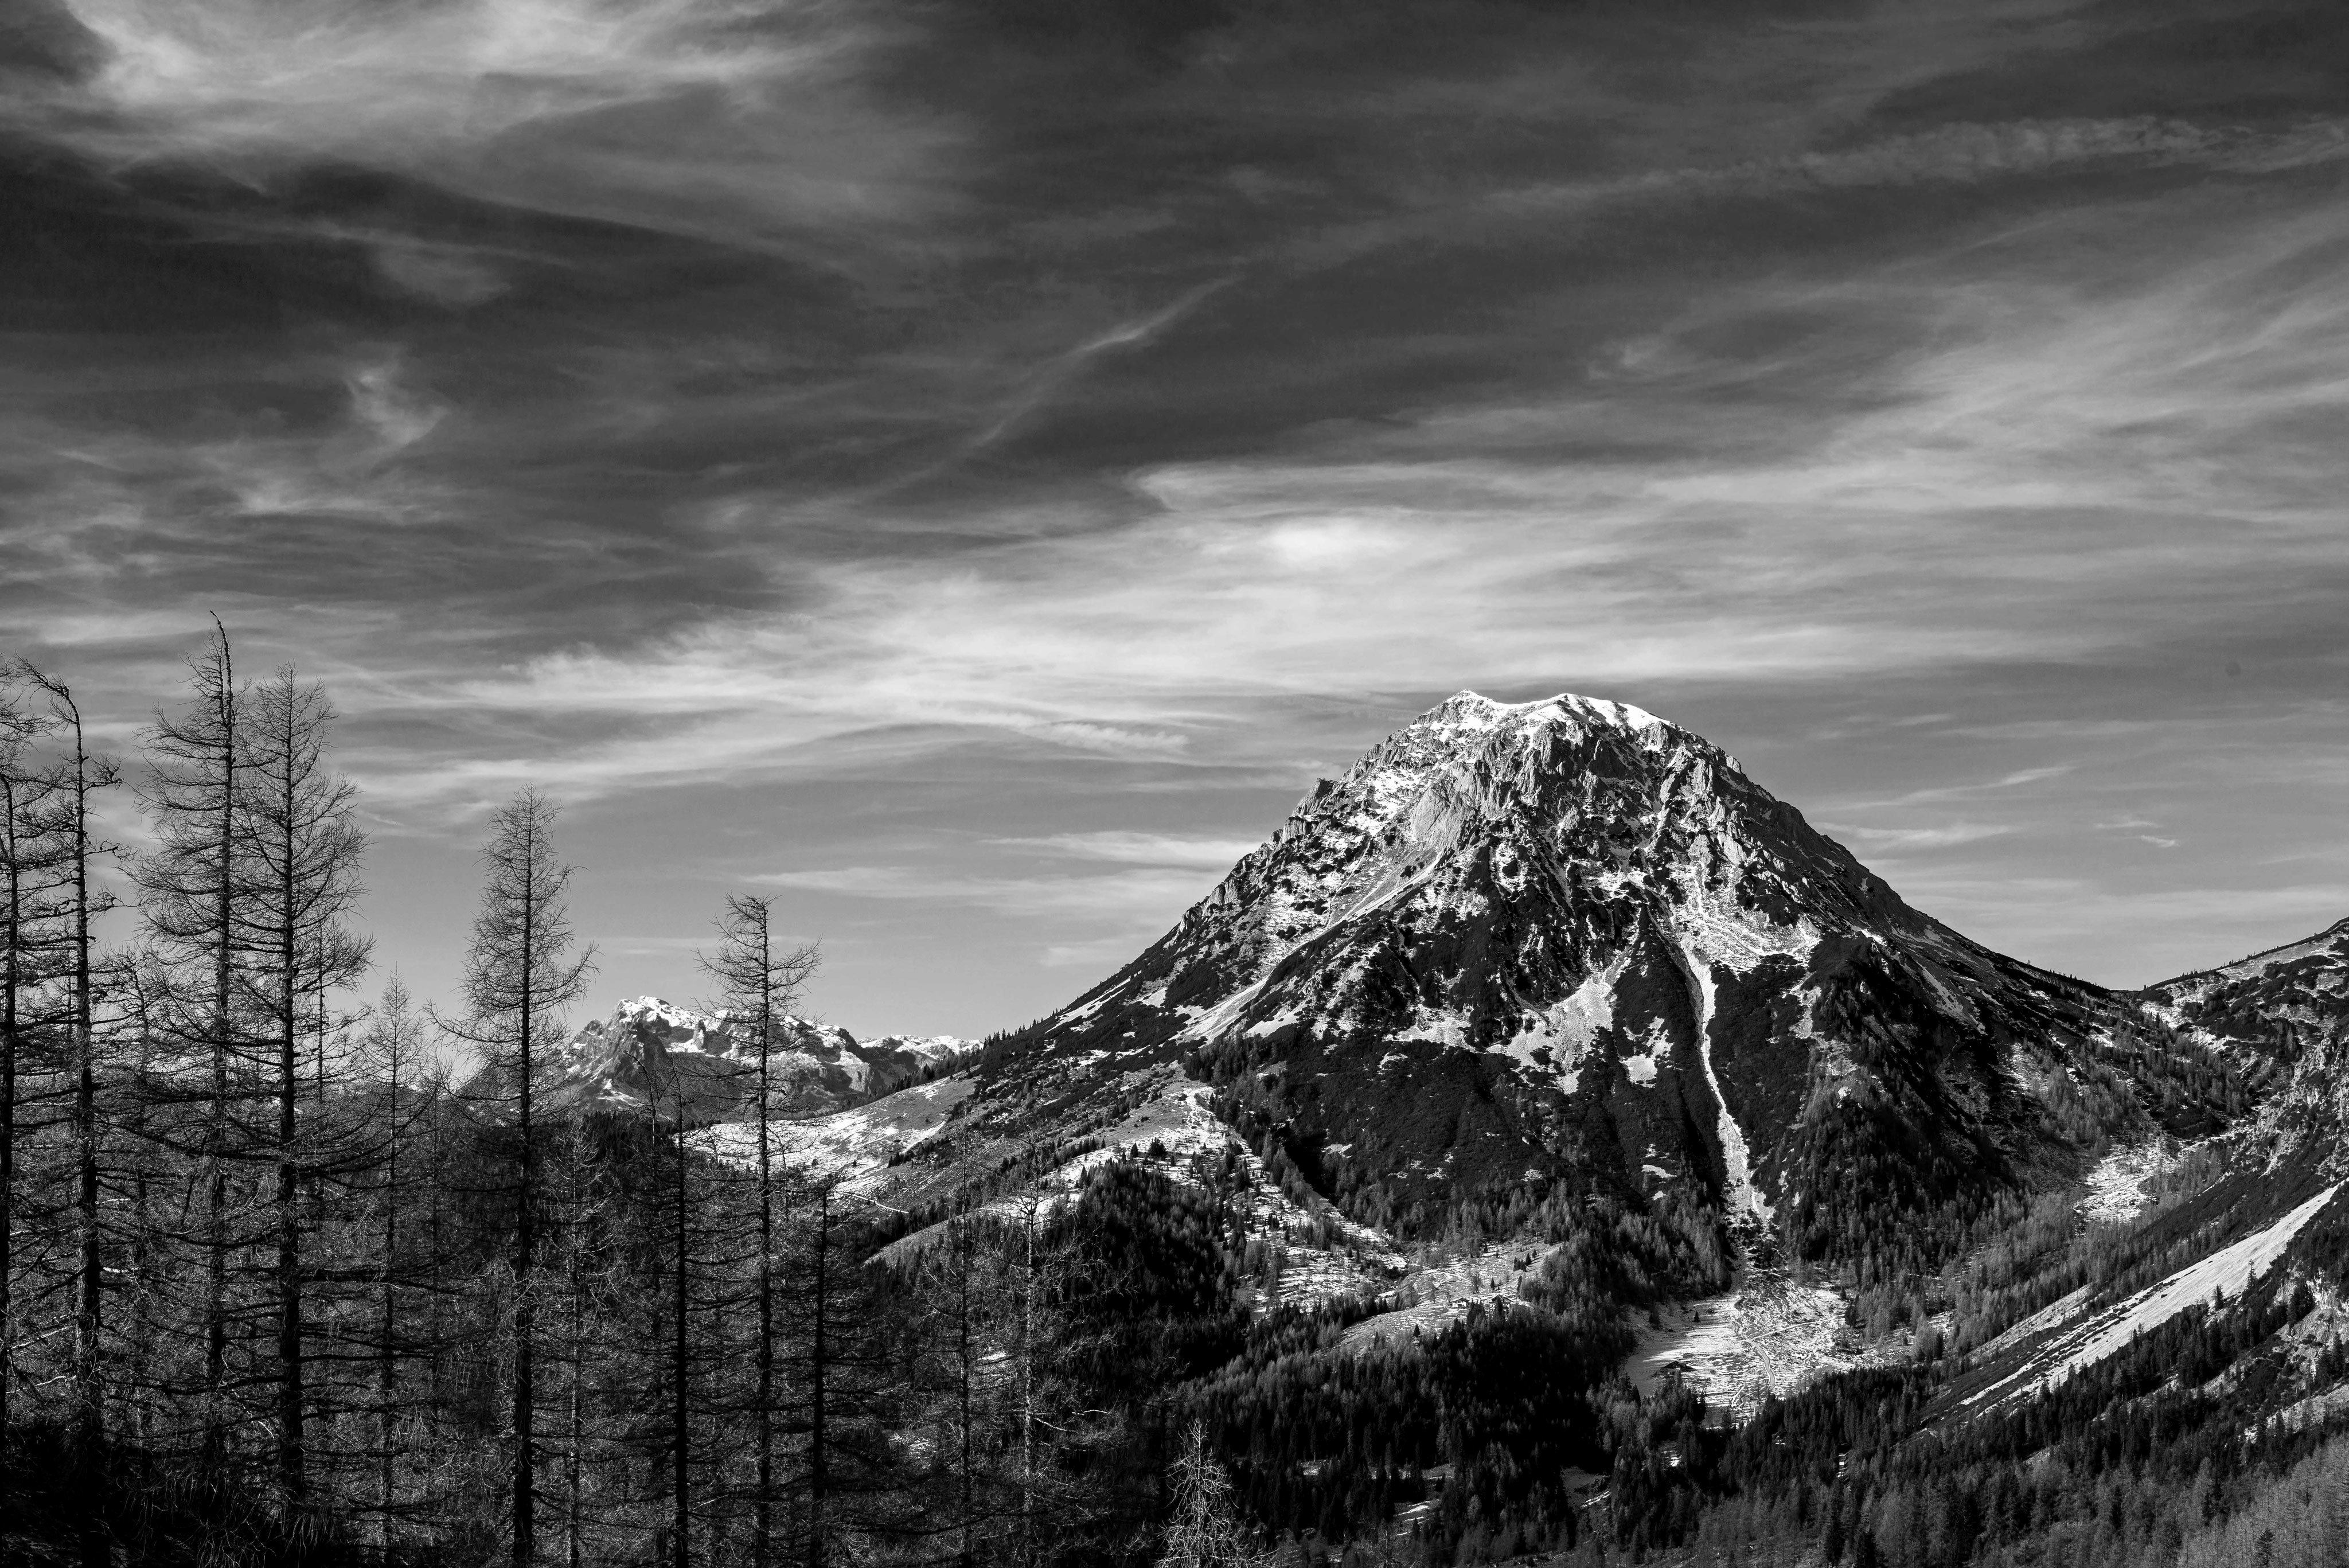 Black and White Paintings Lovely Mountains Black and White Paintings and Graphy